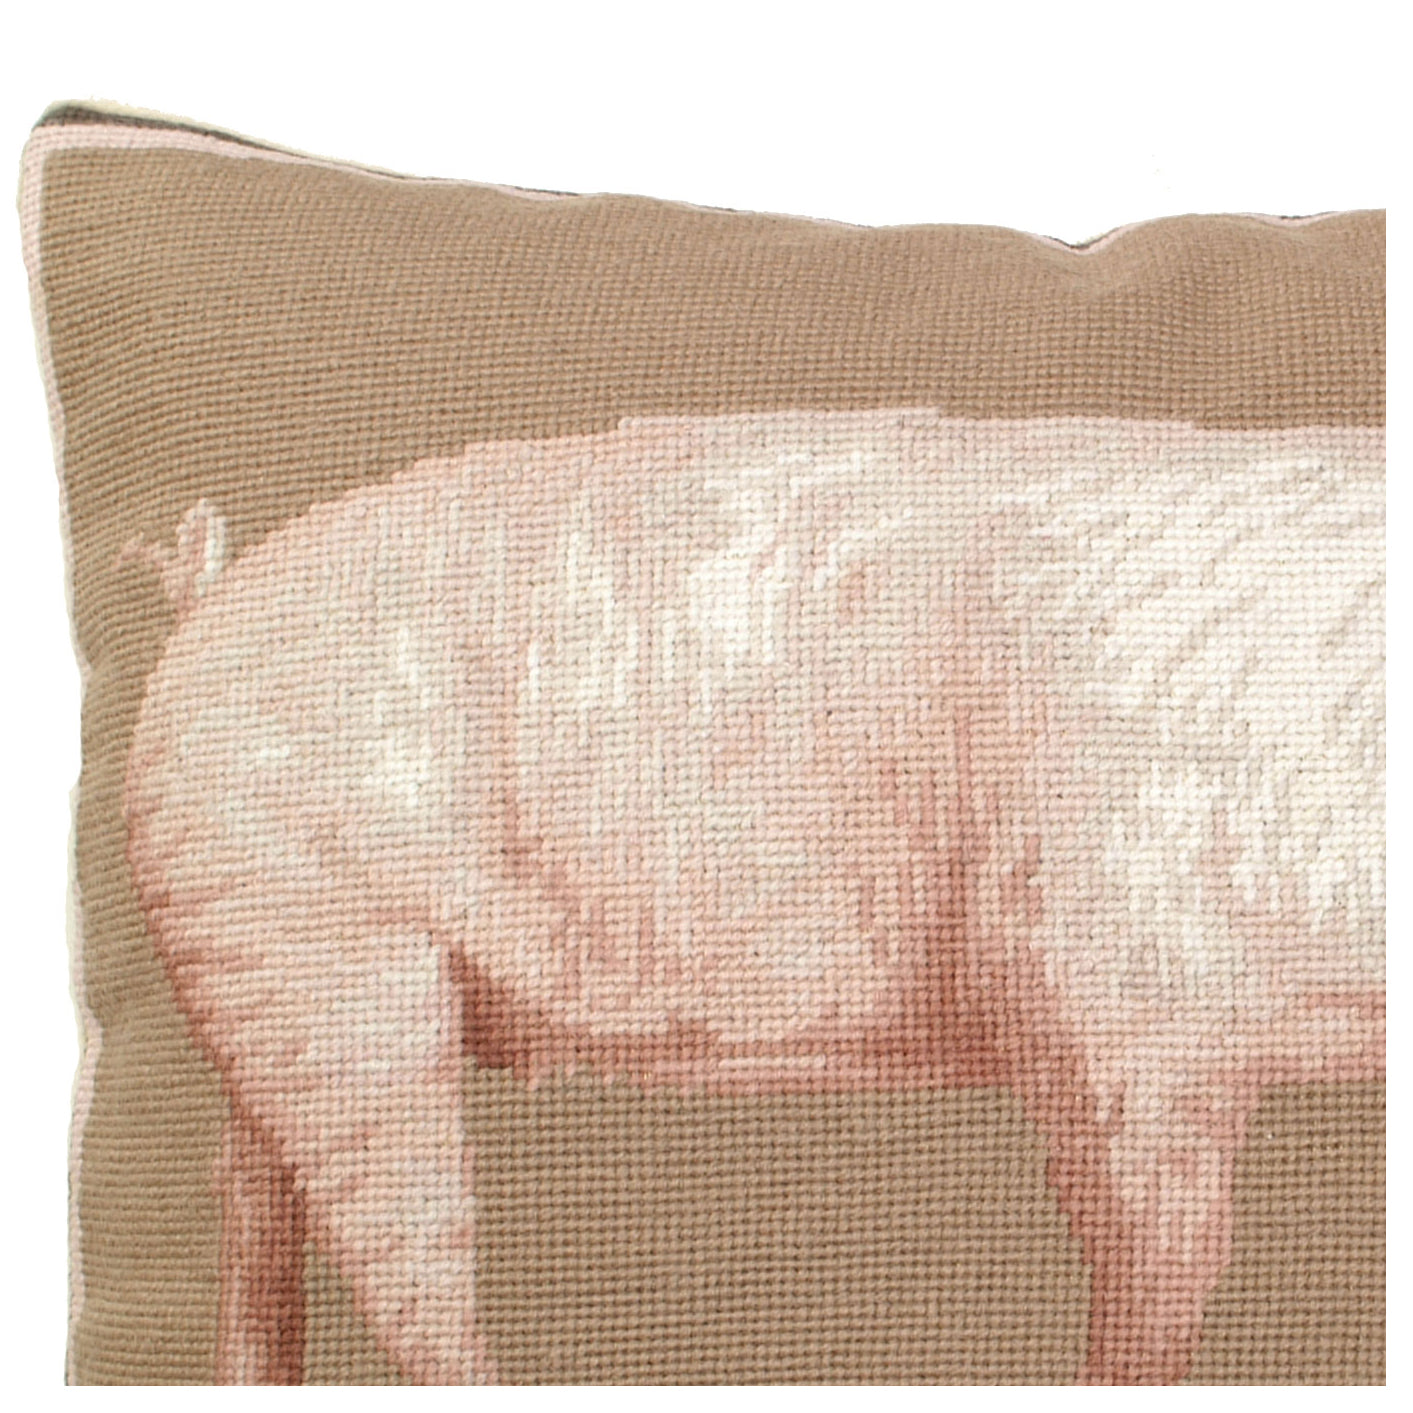 American Yorkshire Needlepoint Pillow